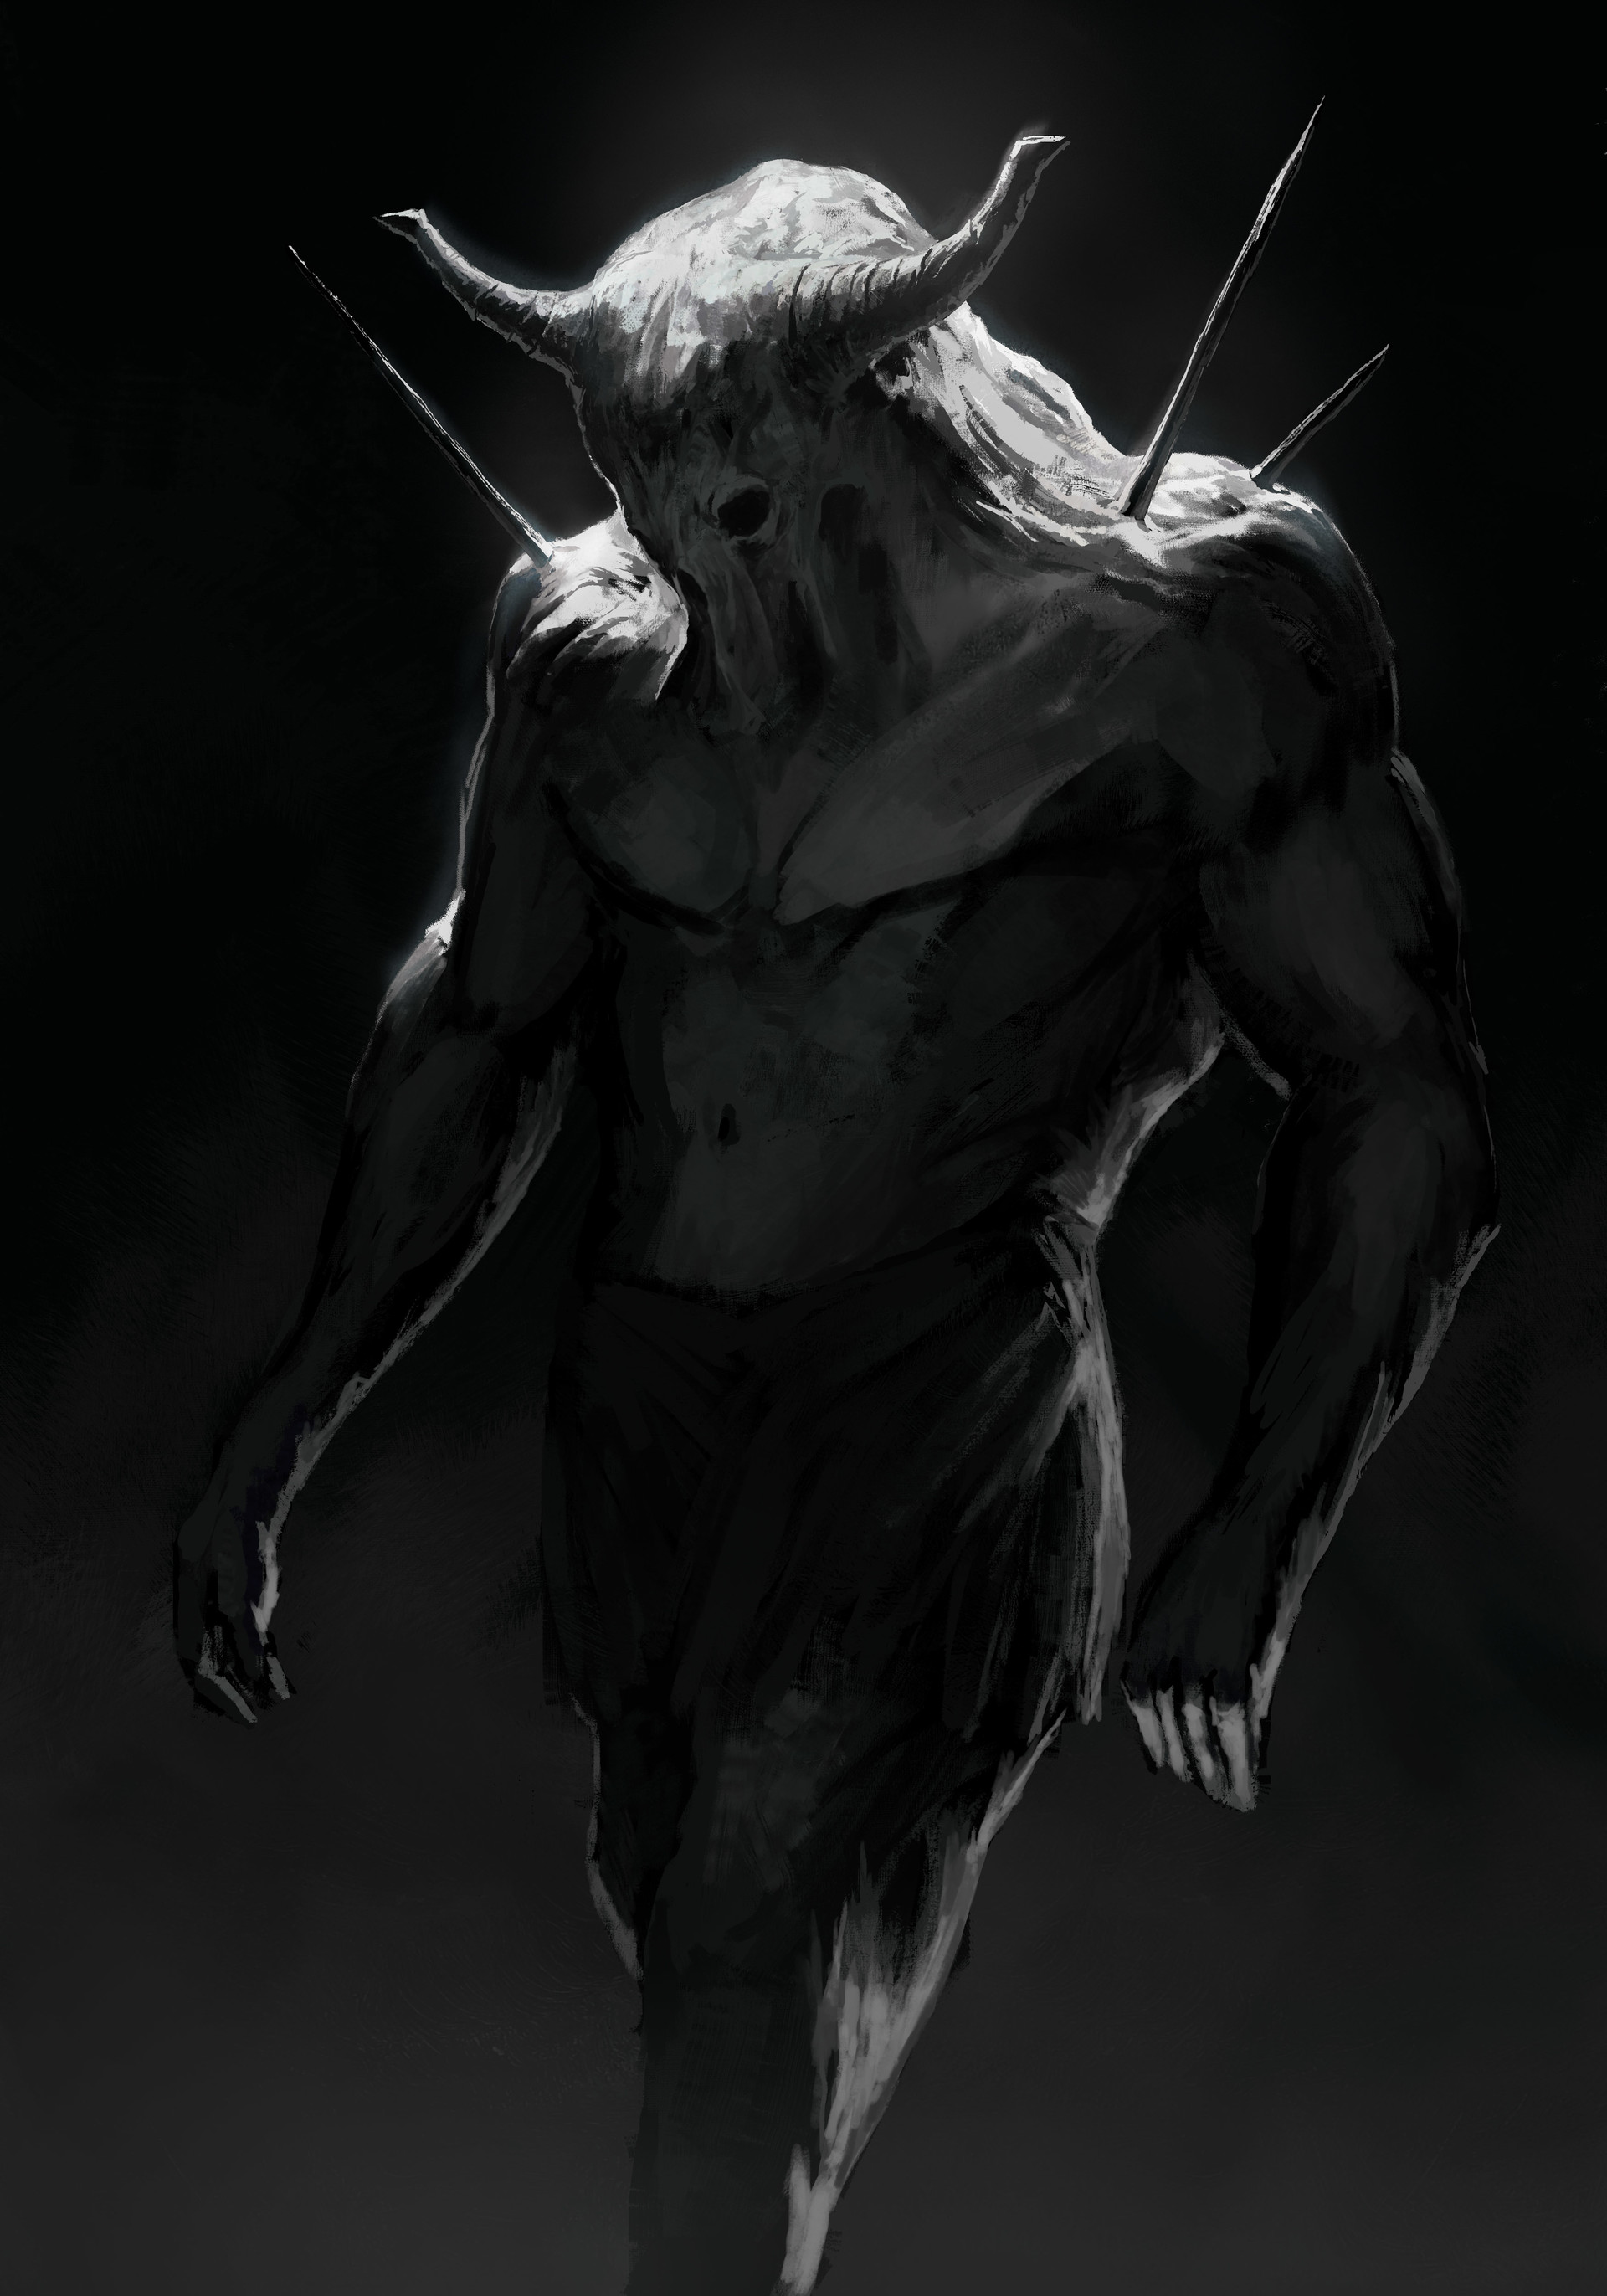 Kerim akyuz beastsketch